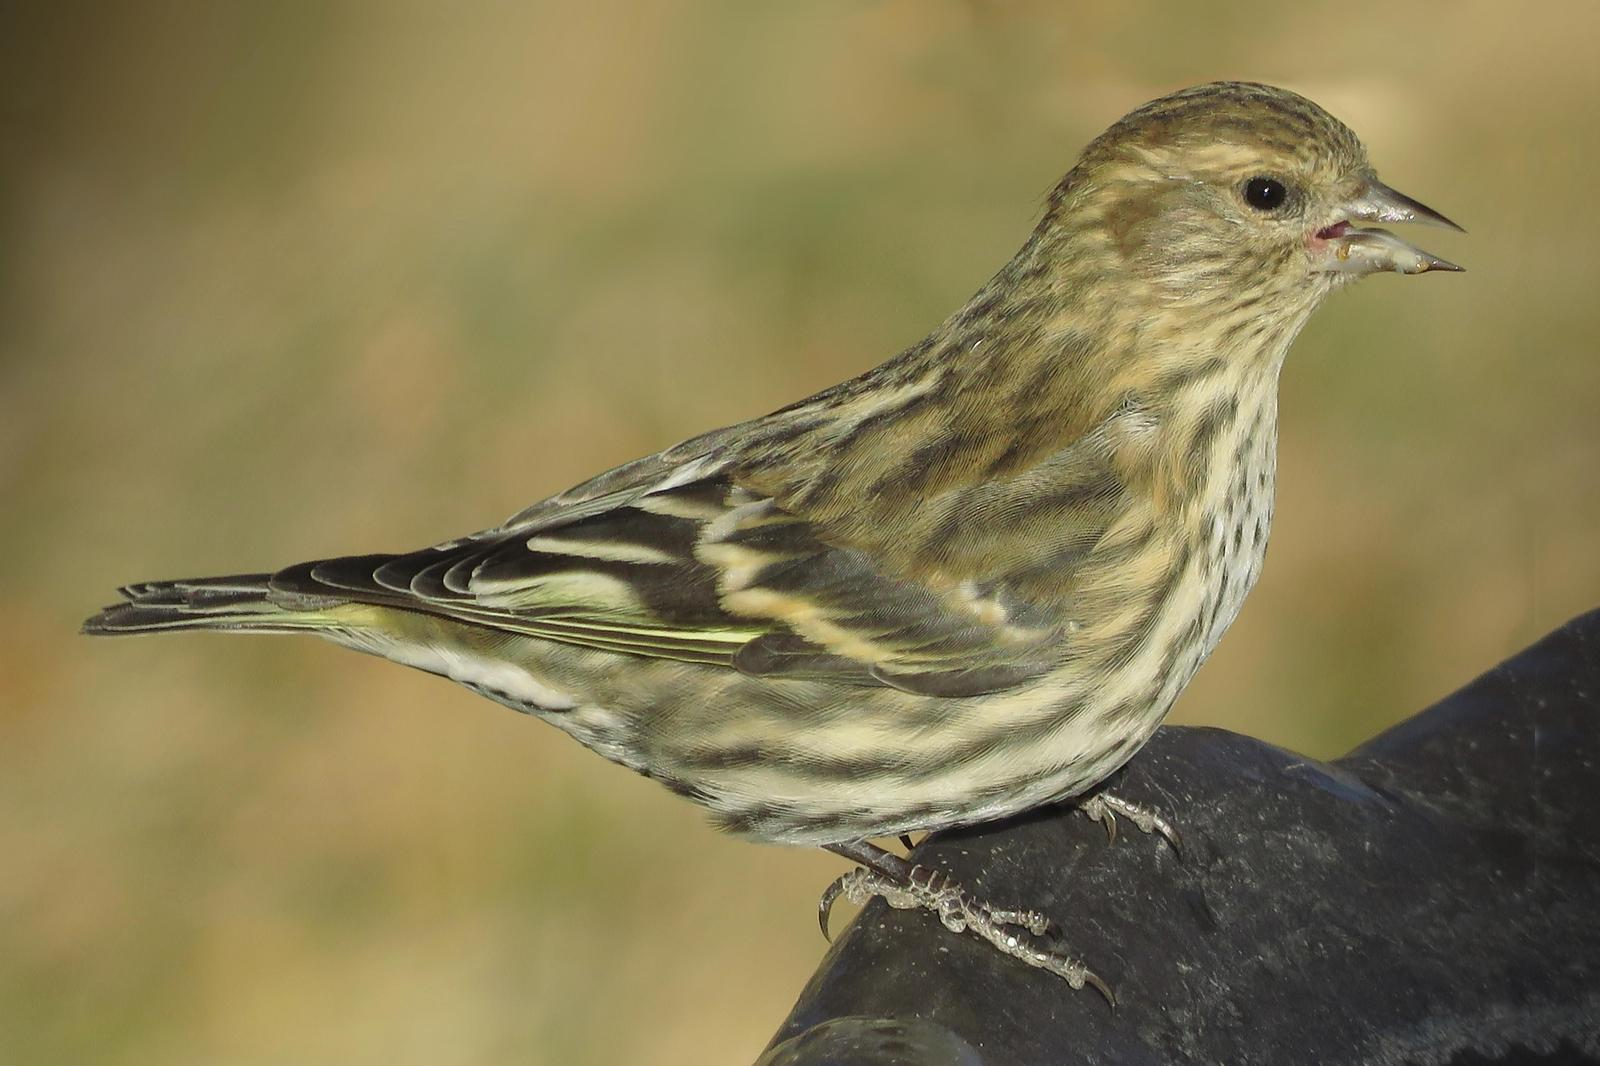 Pine Siskin Photo by Bob Neugebauer